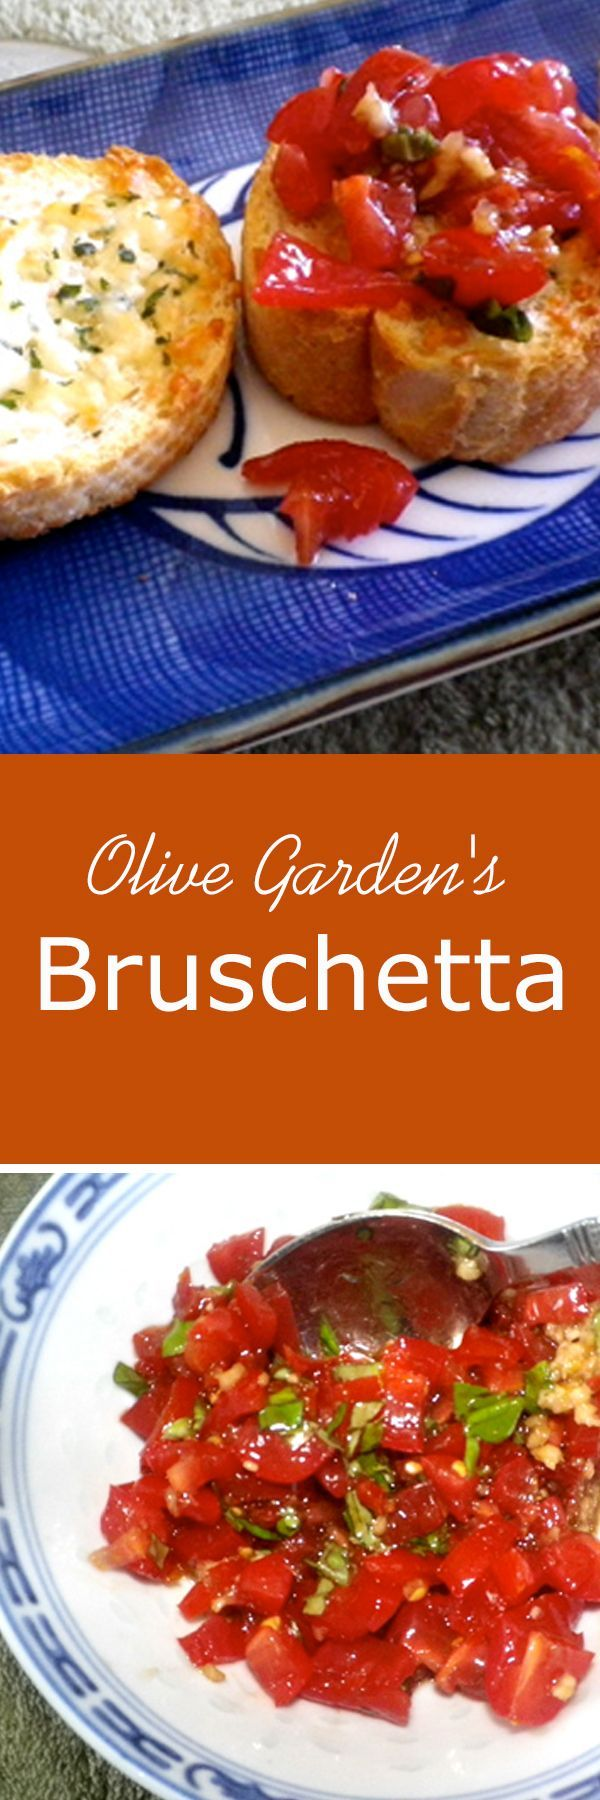 This wonderful Olive Garden's Bruschetta recipe is sure worth a try! Delicious :)